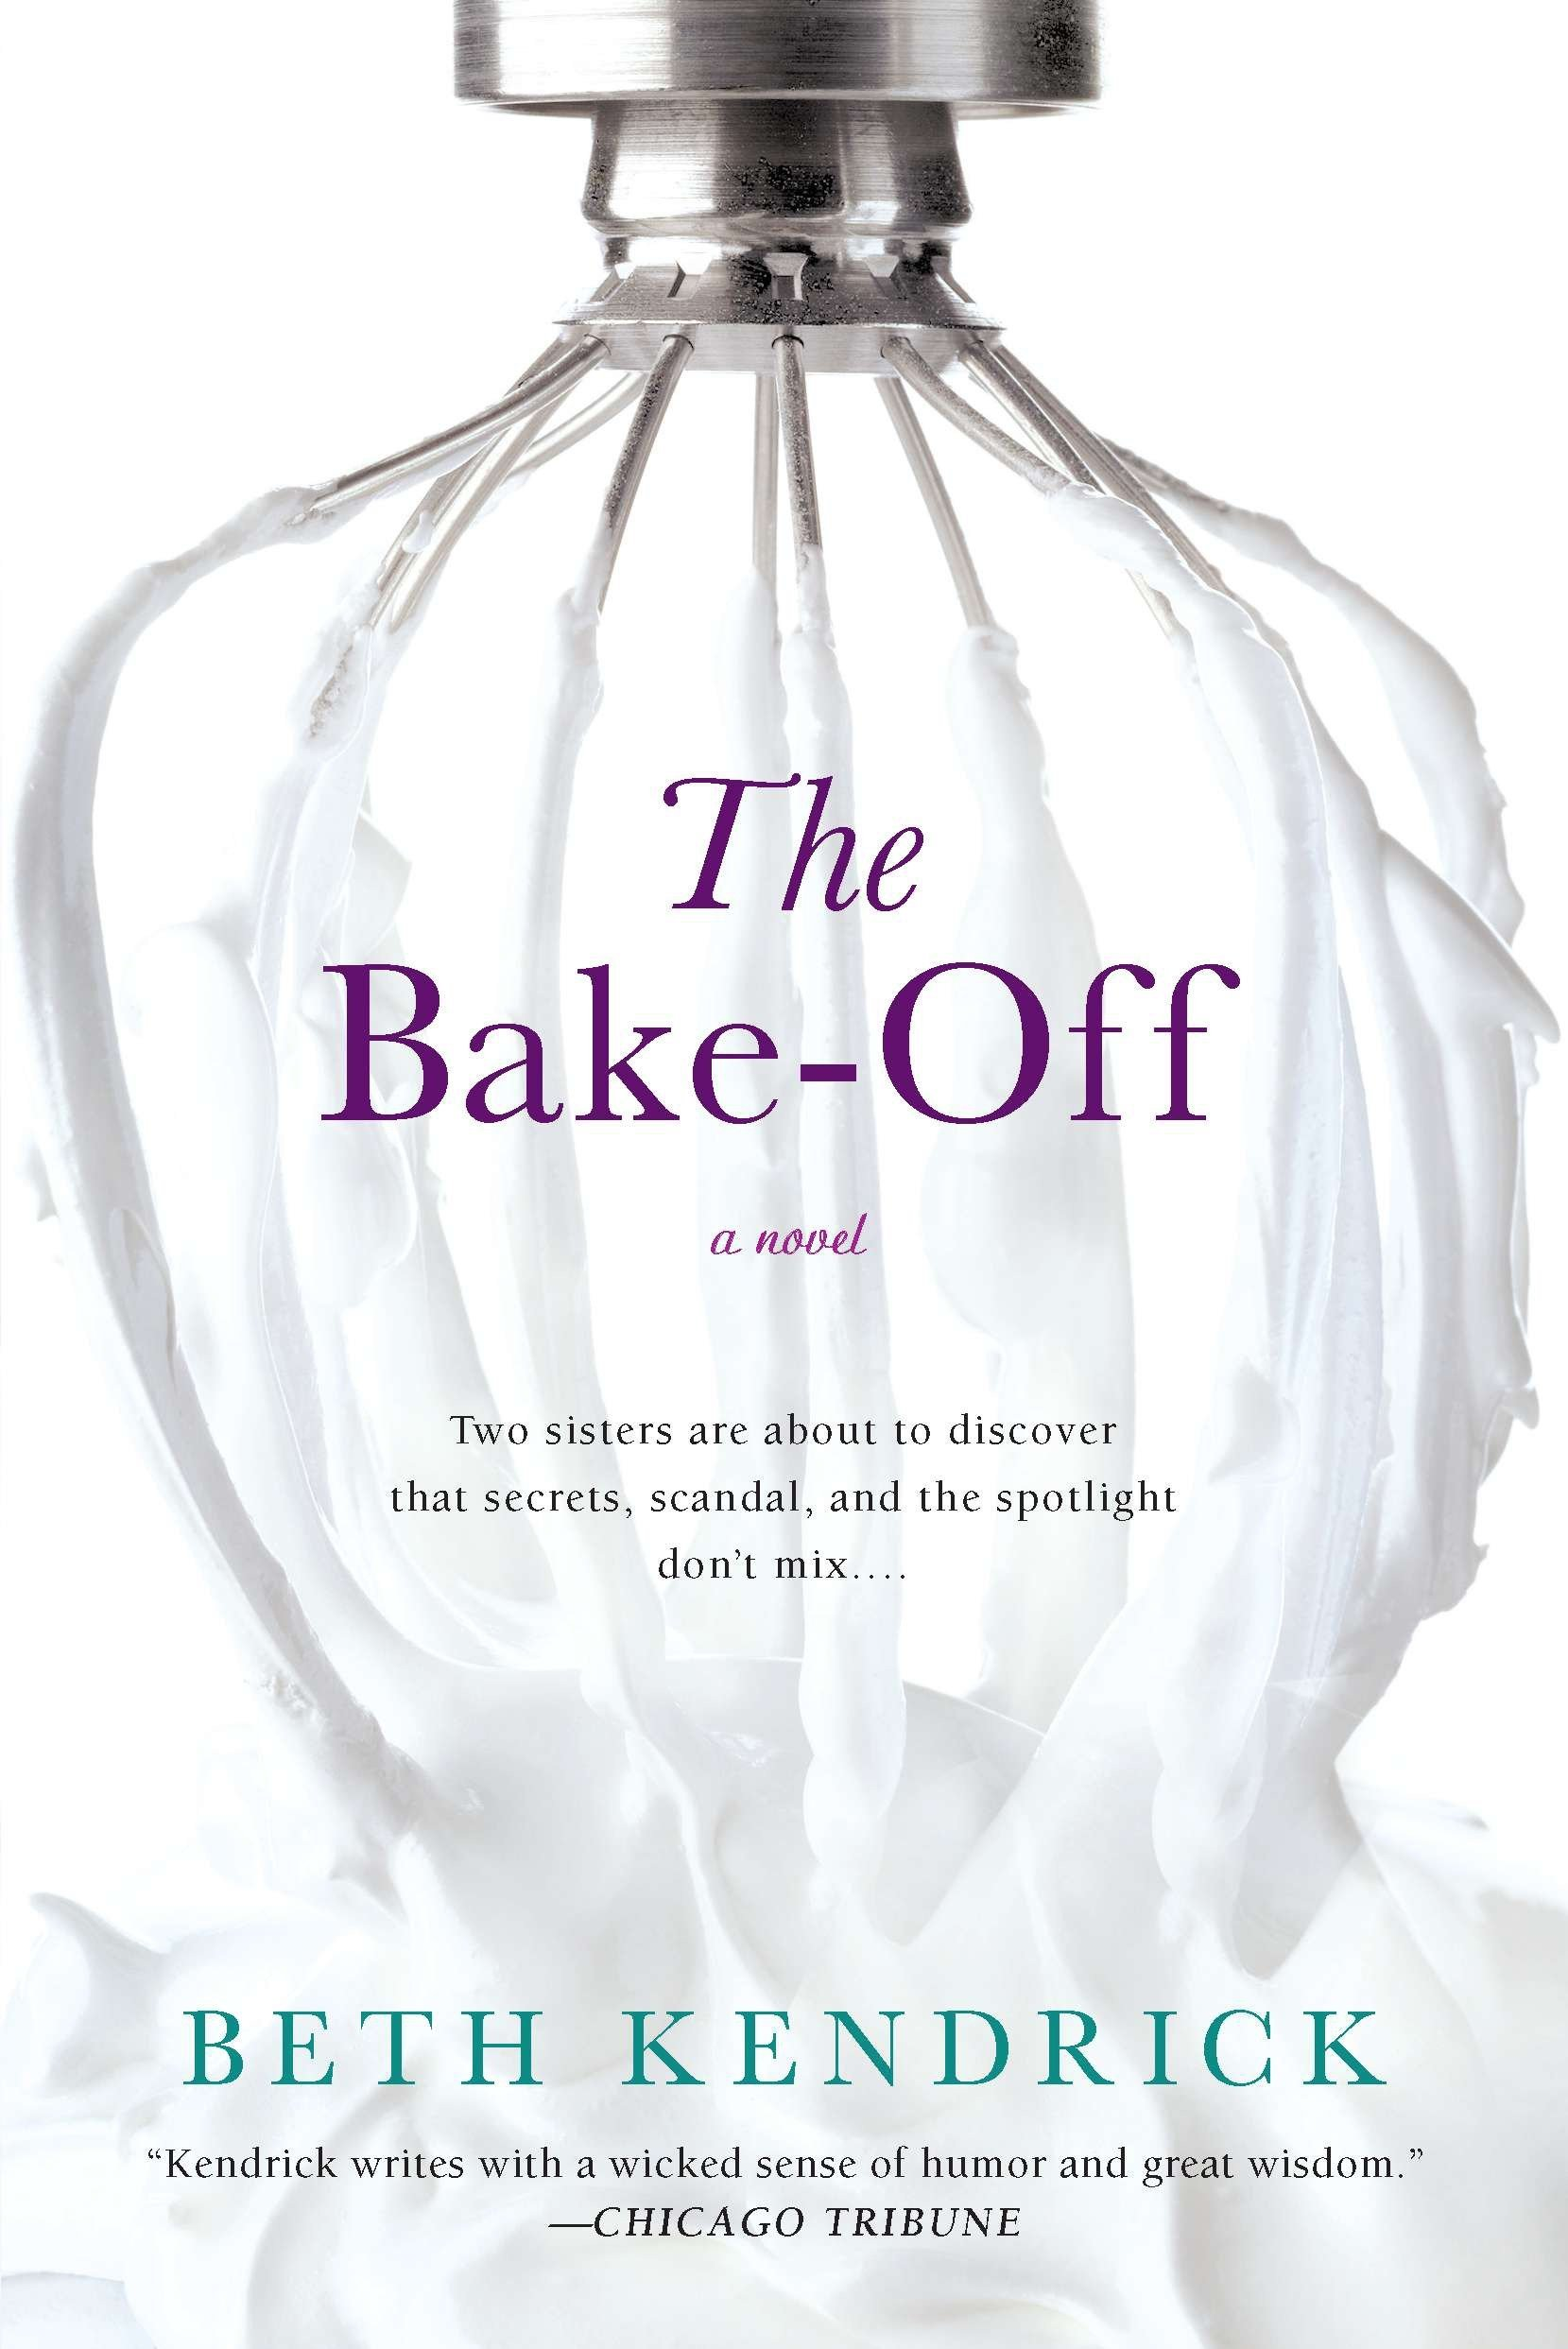 The Bake-Off: Amazon.es: Kendrick, Beth: Libros en idiomas extranjeros